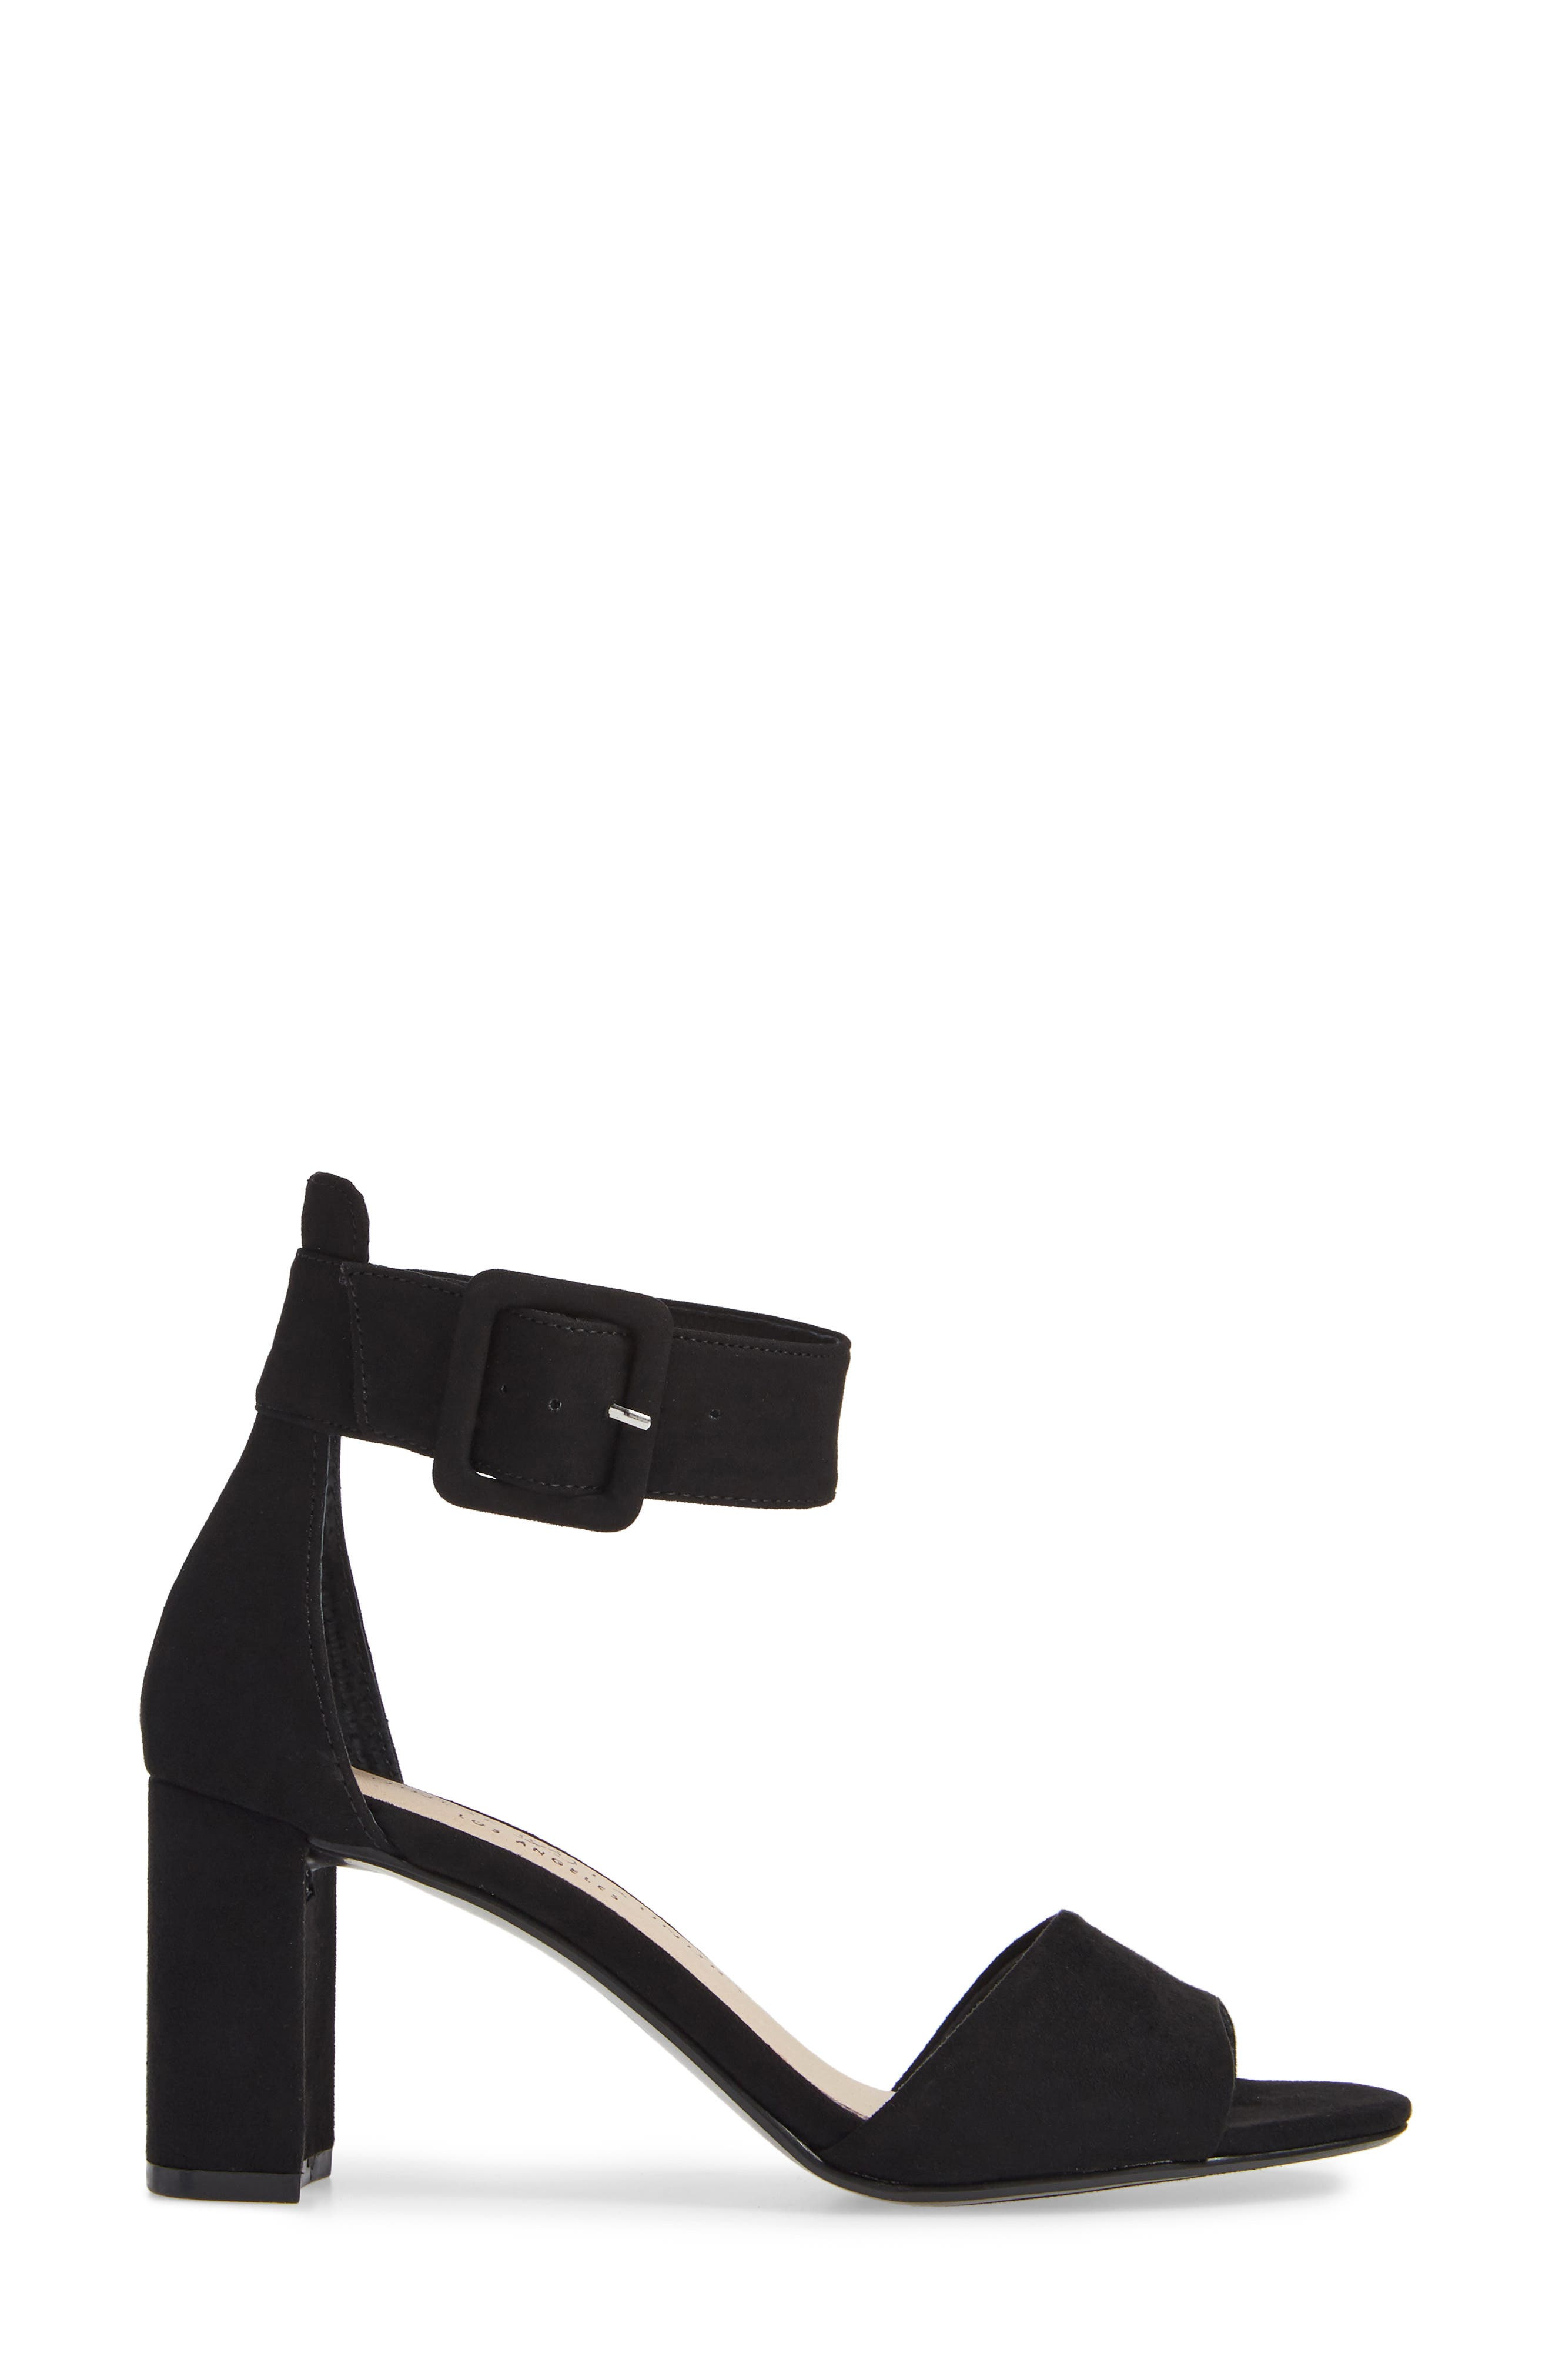 CHINESE LAUNDRY,                             Rumor Sandal,                             Alternate thumbnail 3, color,                             BLACK SUEDE